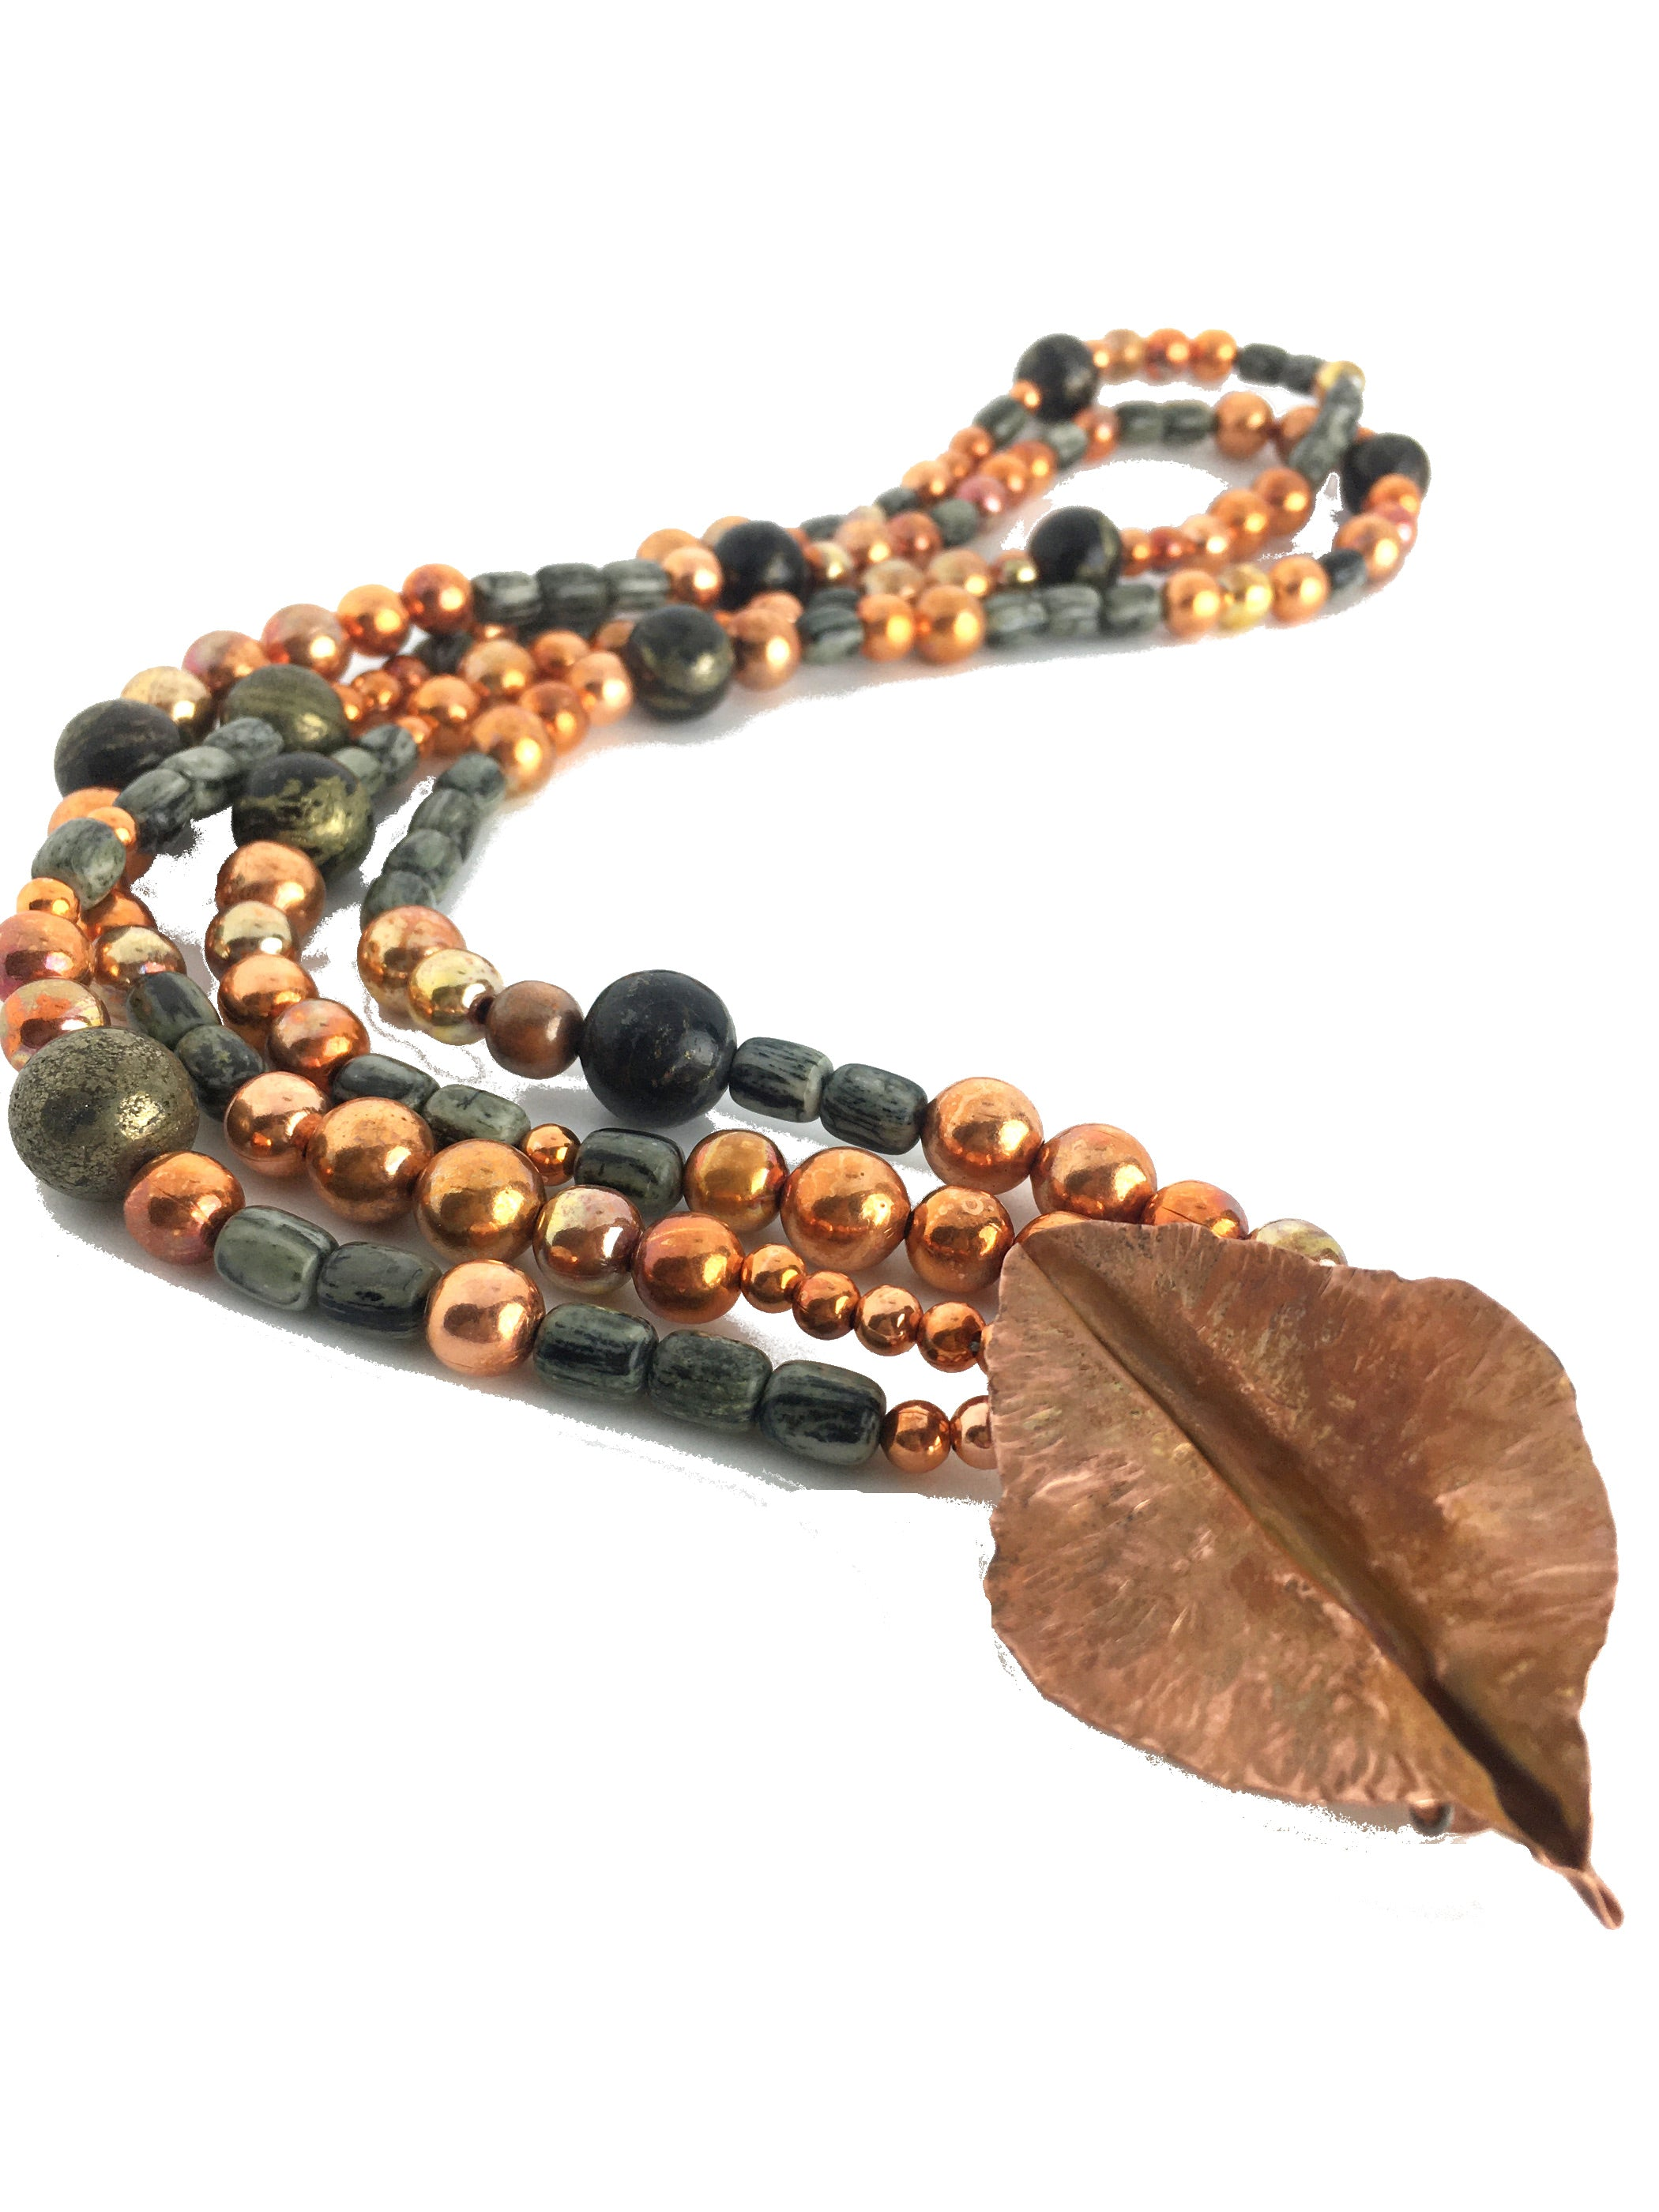 Double Strand Arizona Gemstone Sonoran Sunset Necklace with Hand Forged Copper Leaf